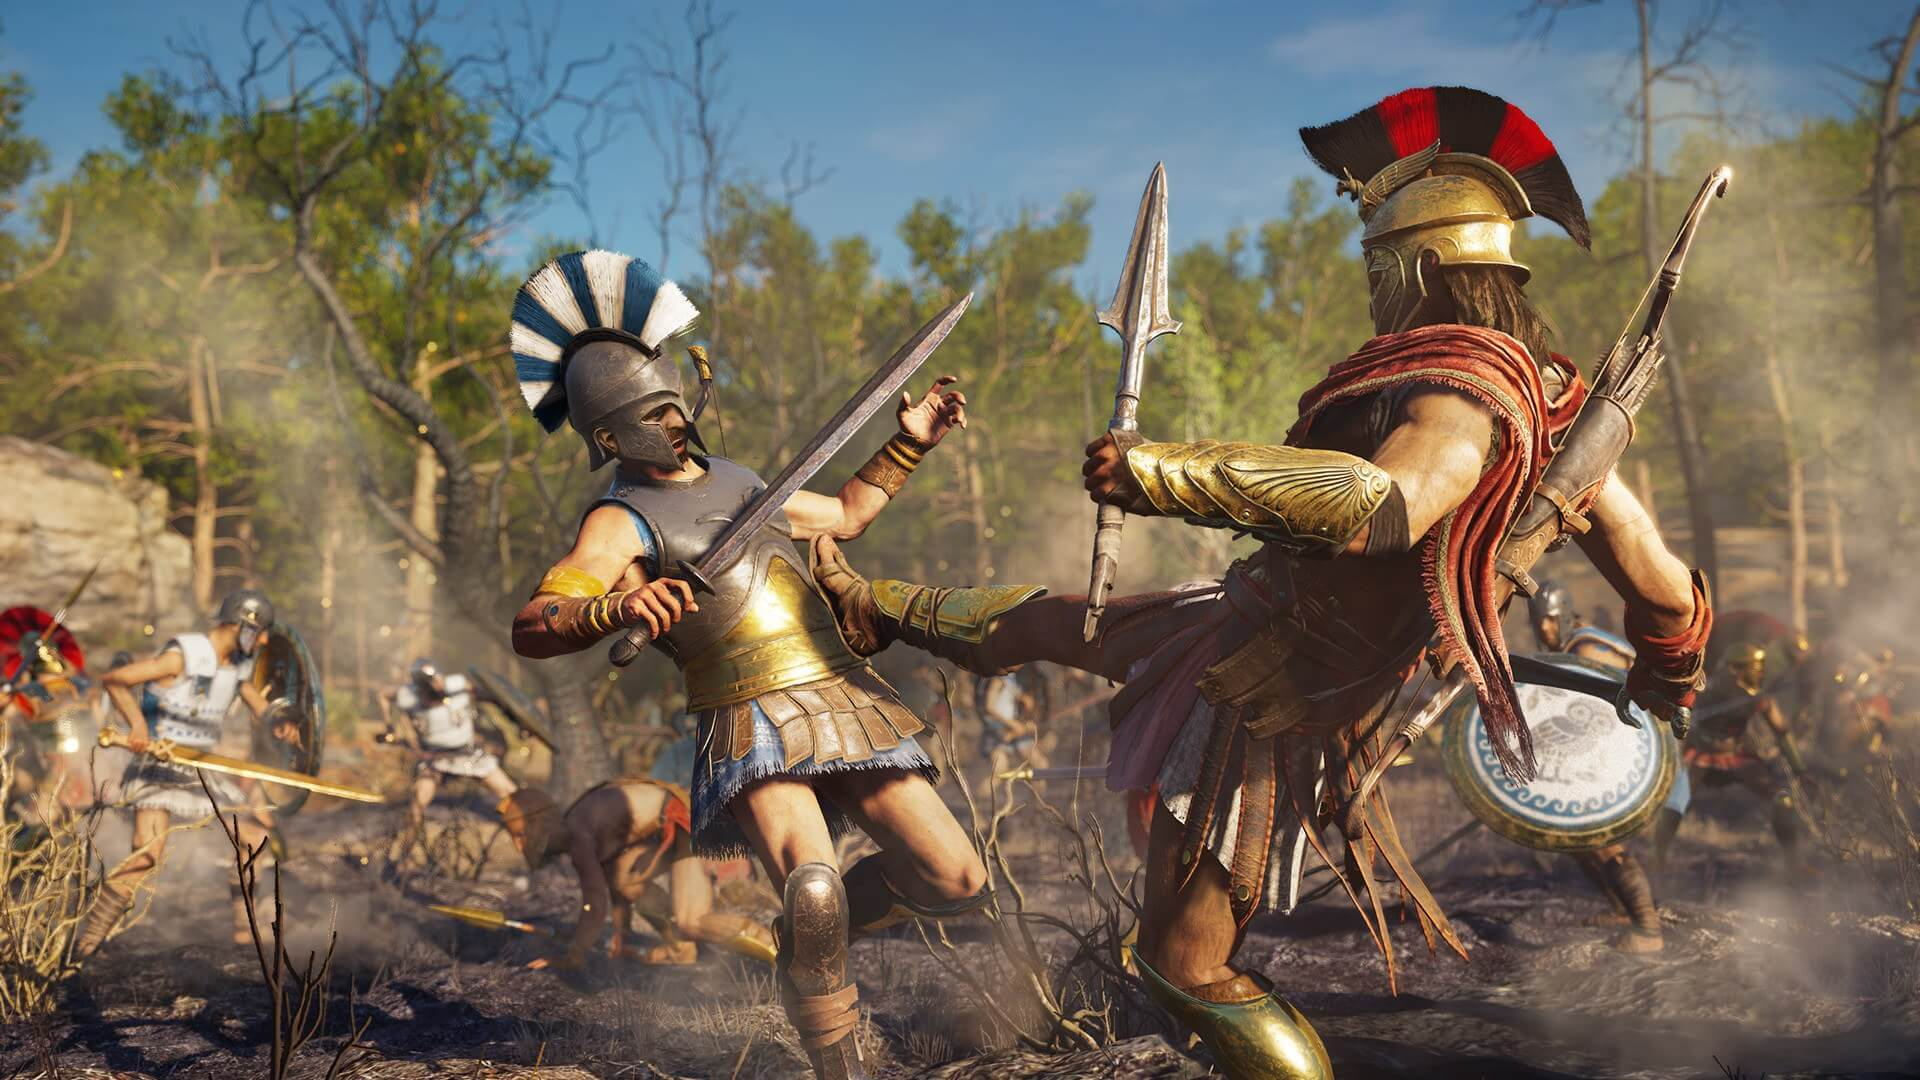 Assassin's Creed Odyssey hits 62K concurrent players on Steam, beating Origins' peak